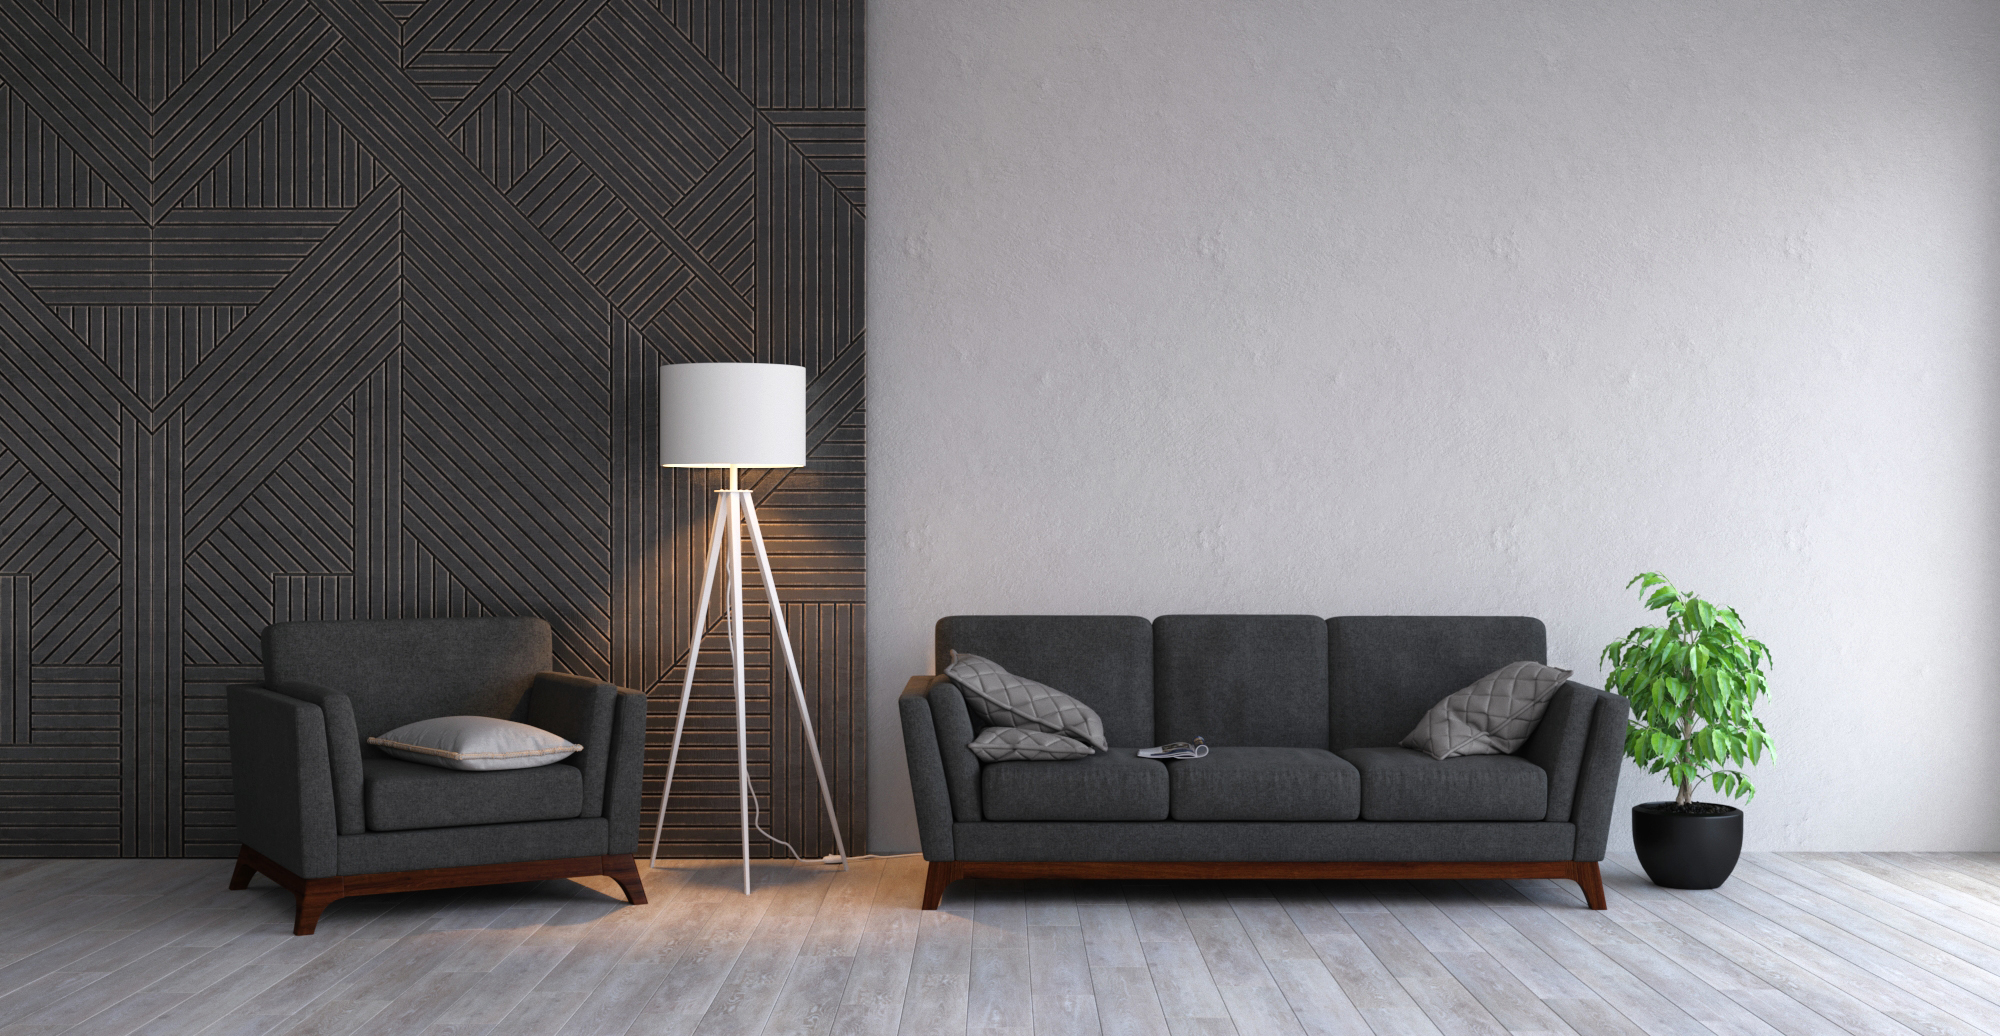 Filt Rectangular Cushion styled in modern contemporary living room